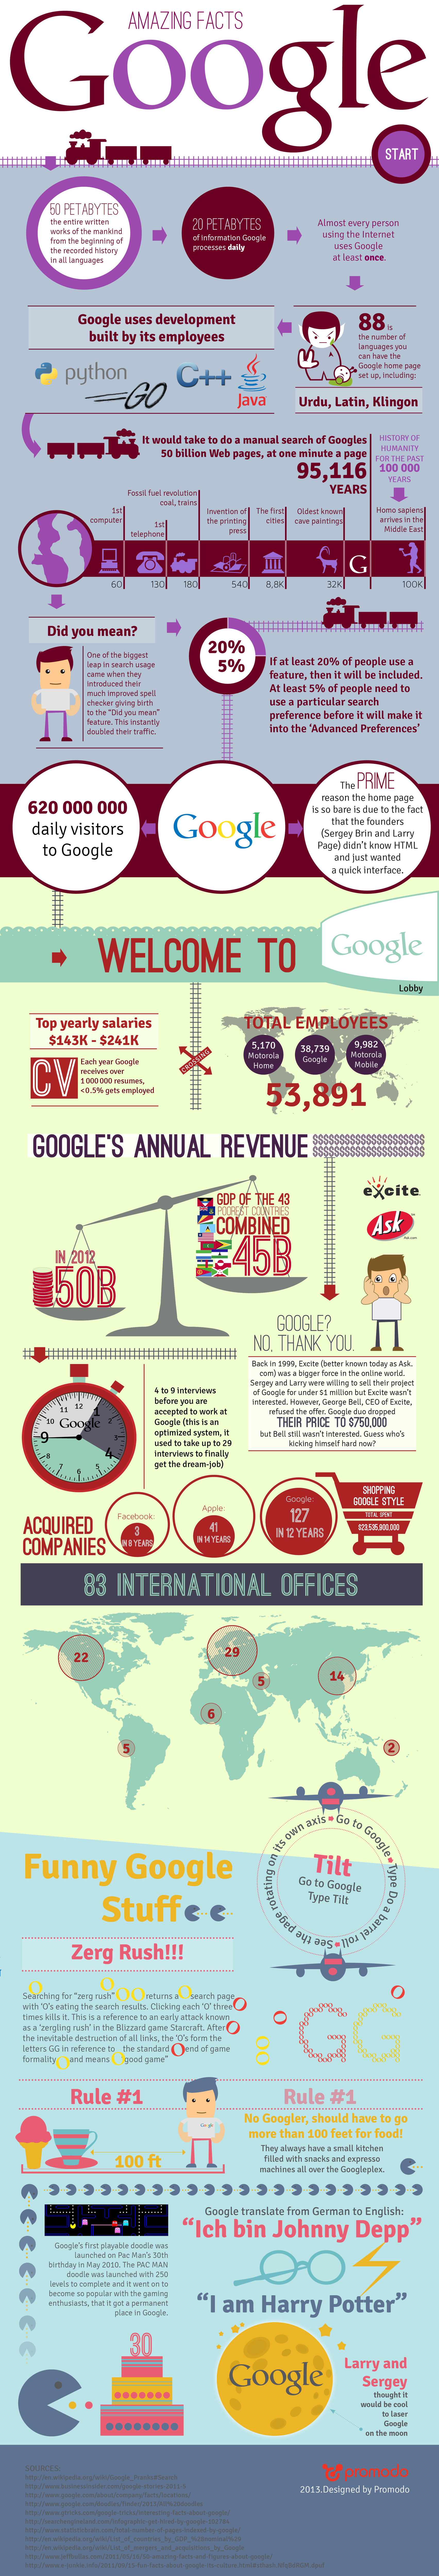 20+ Amazing Google Facts, funny stuff to do, and statistics You Probably Didn't Know [INFOGRAPHIC]